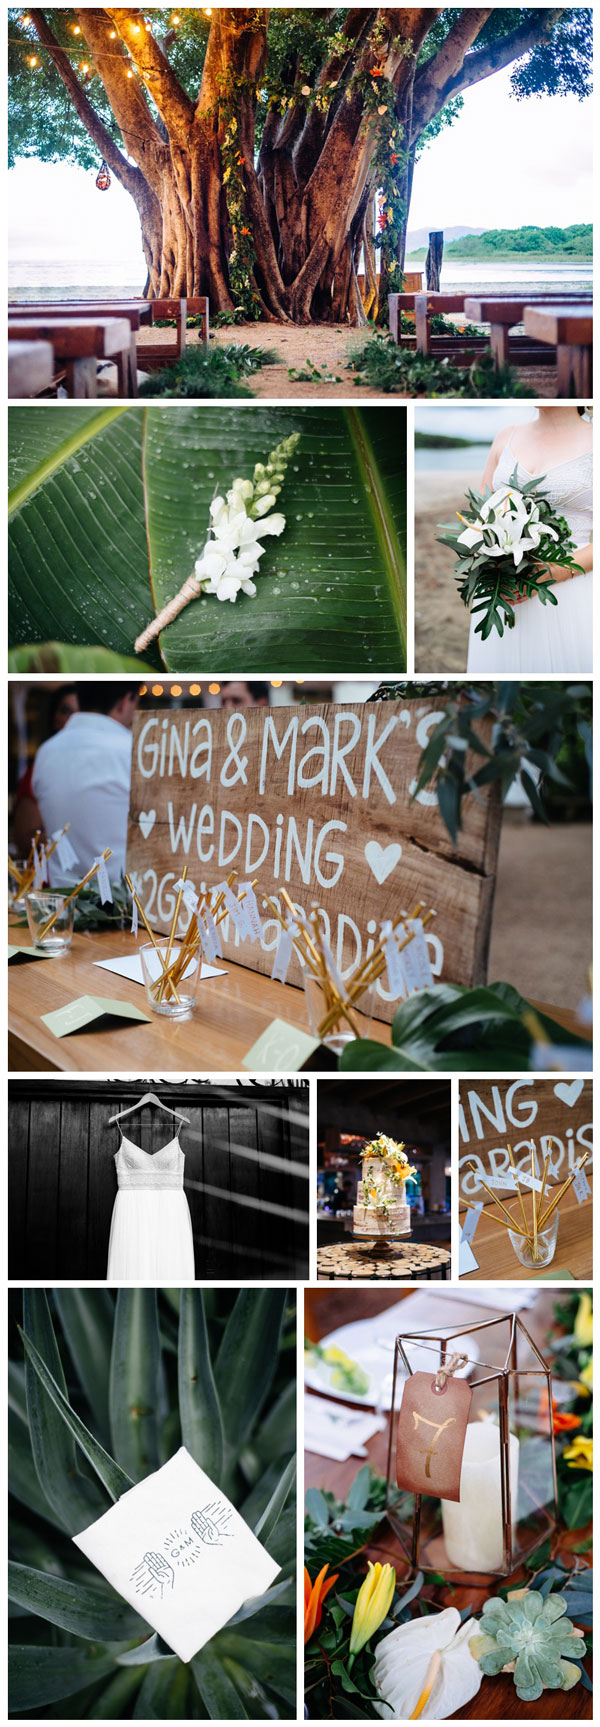 Tropical wedding at Pangas Beach Club in Tamarindo, Costa Rica. Photographed by Kristen M. Brown, Samba to the Sea Photography.